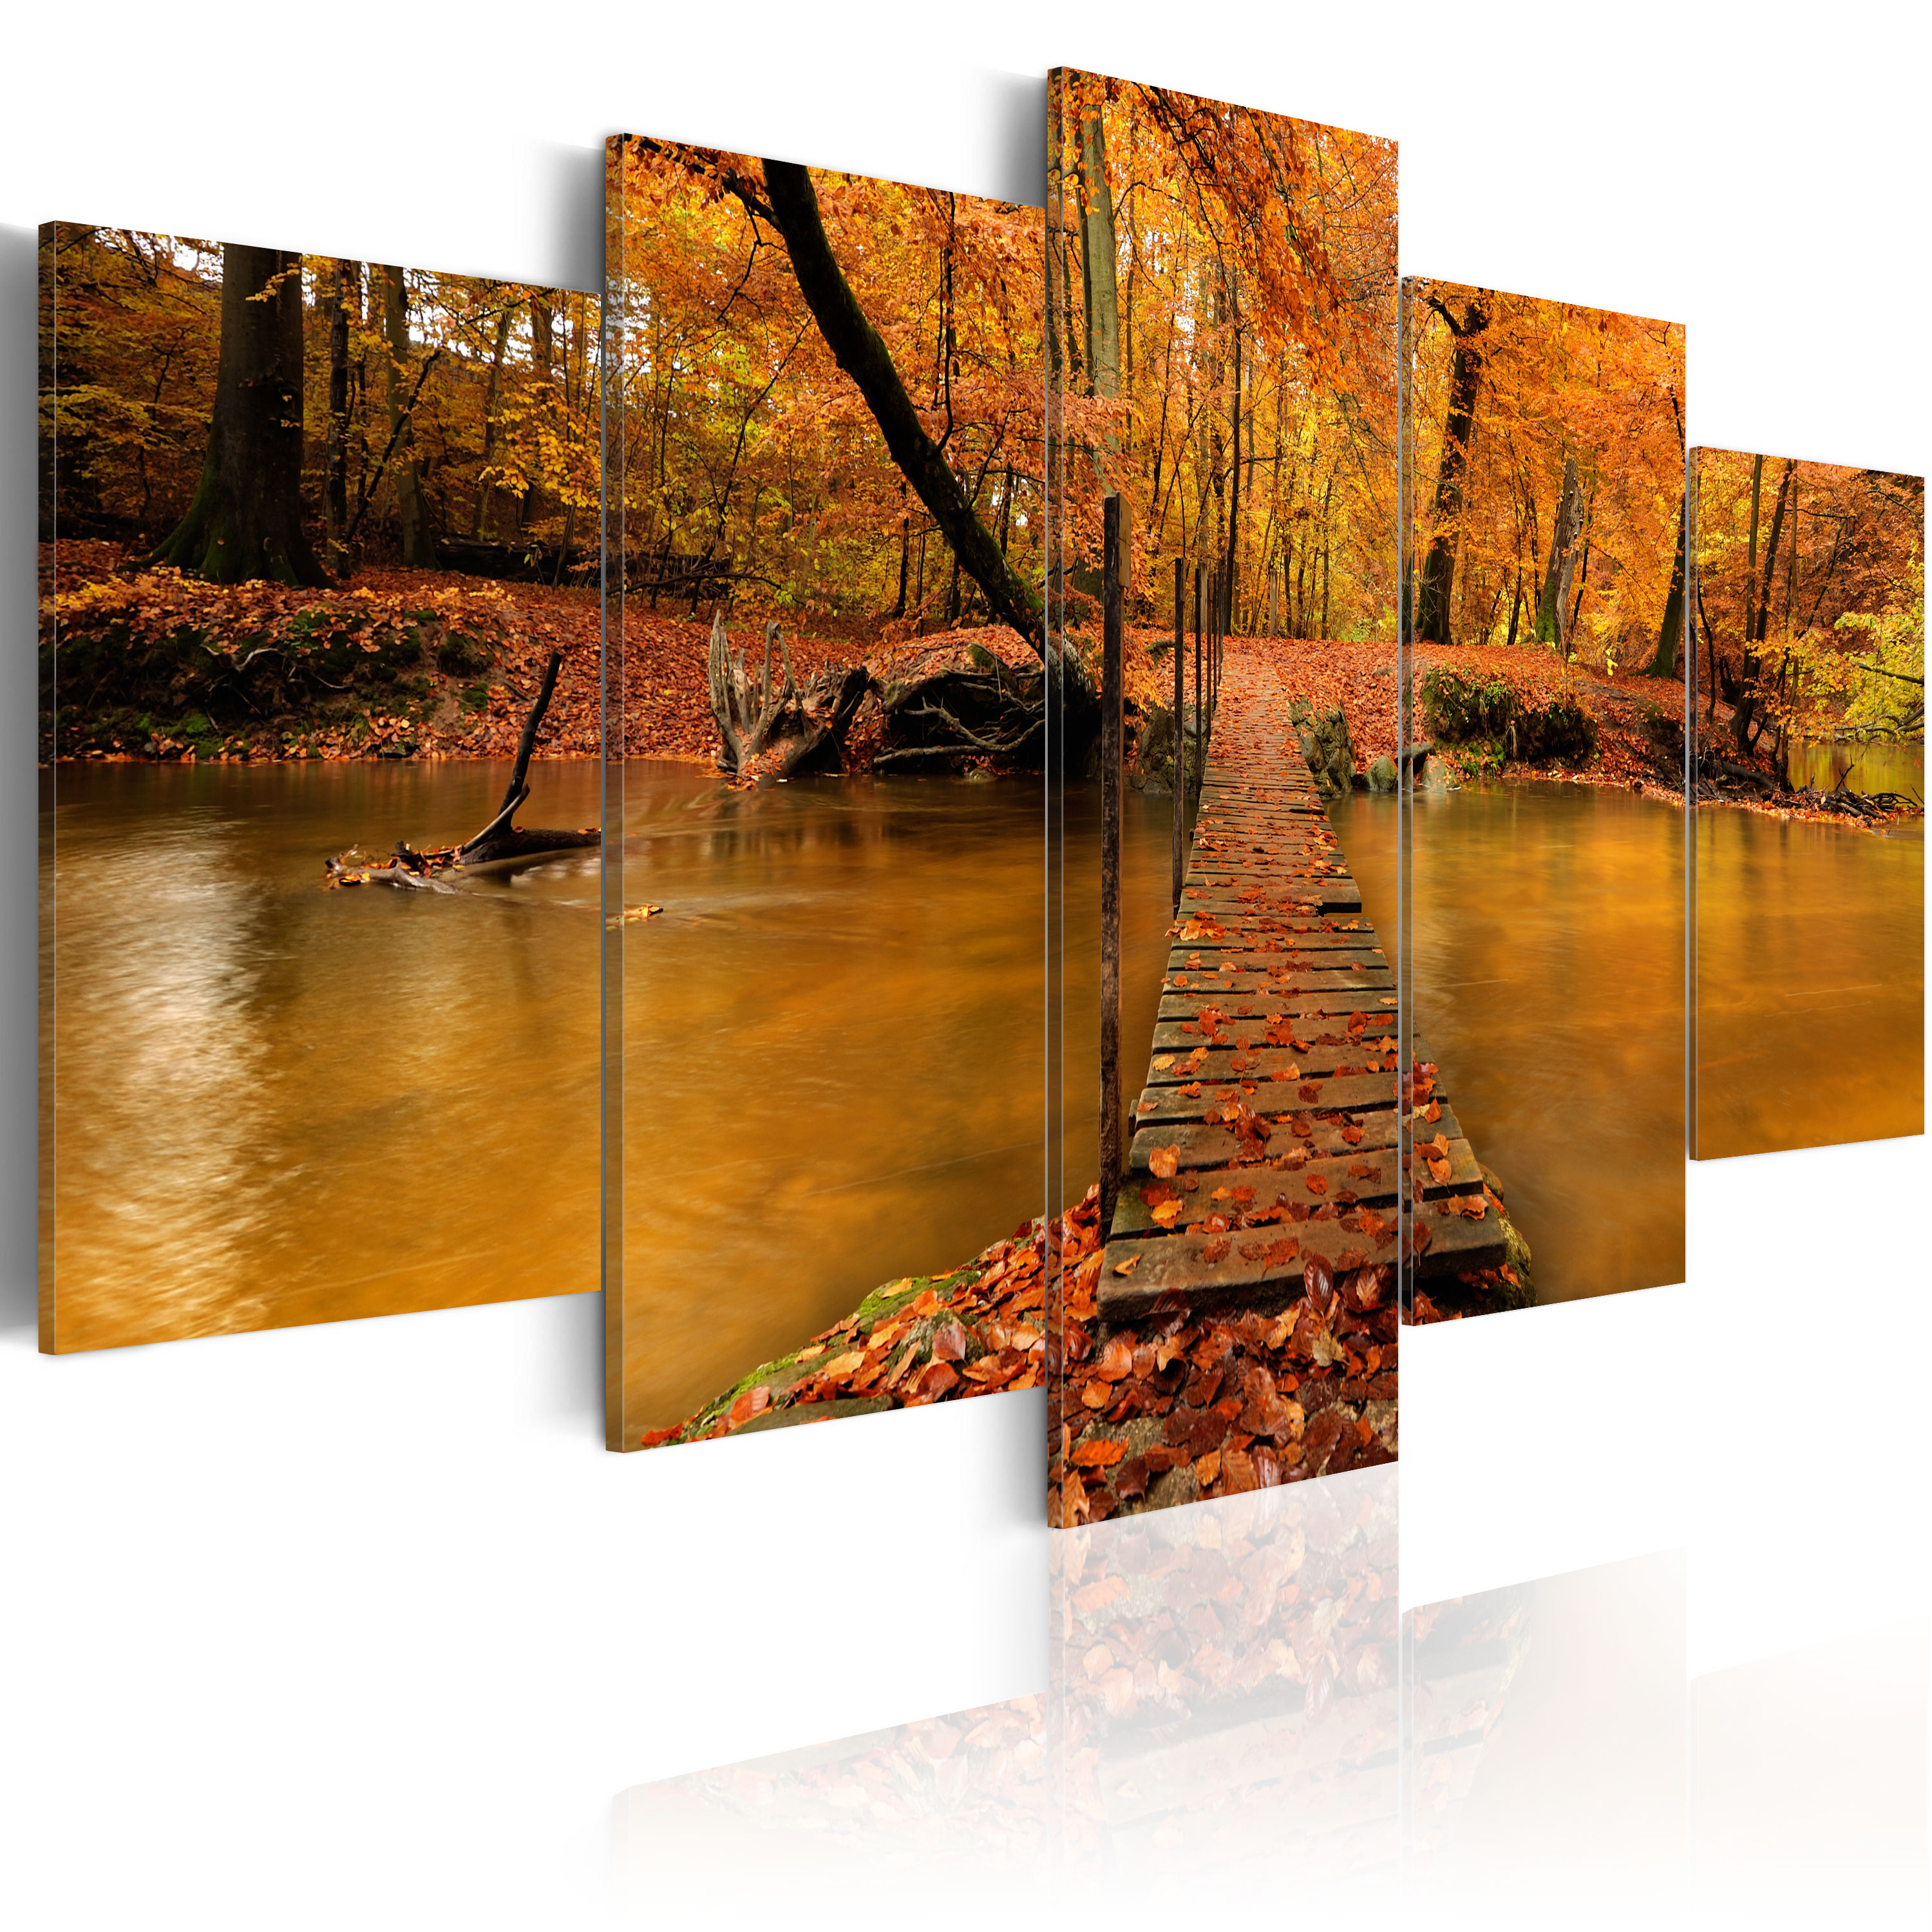 Tableau - Redness of autumn